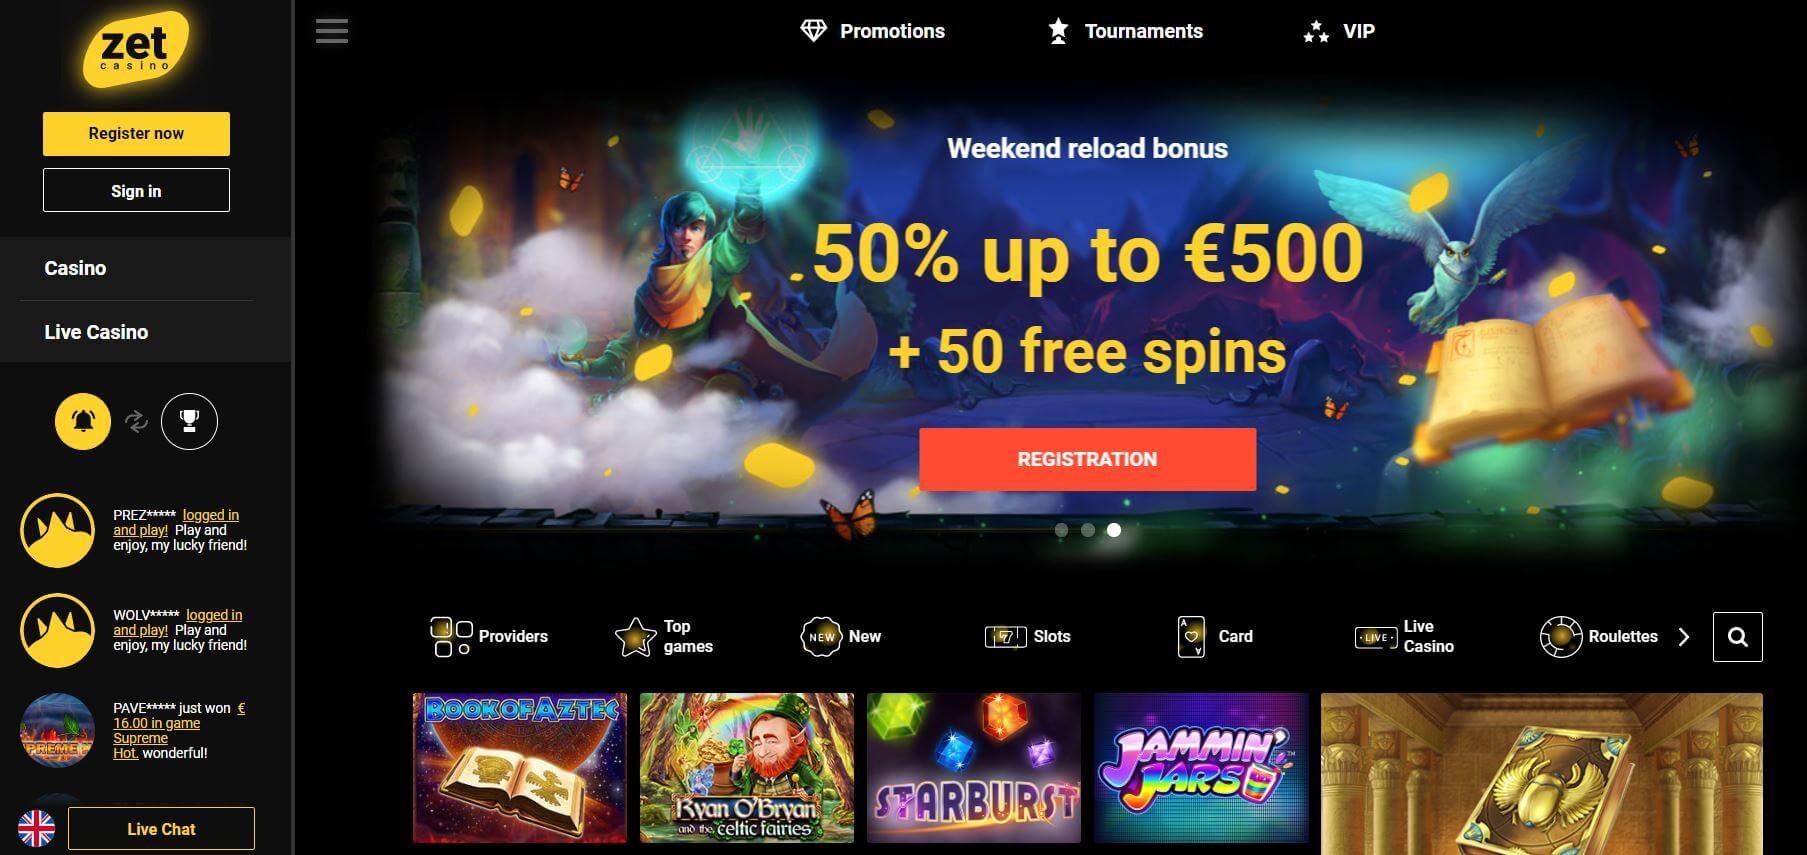 Zet Casino homepage